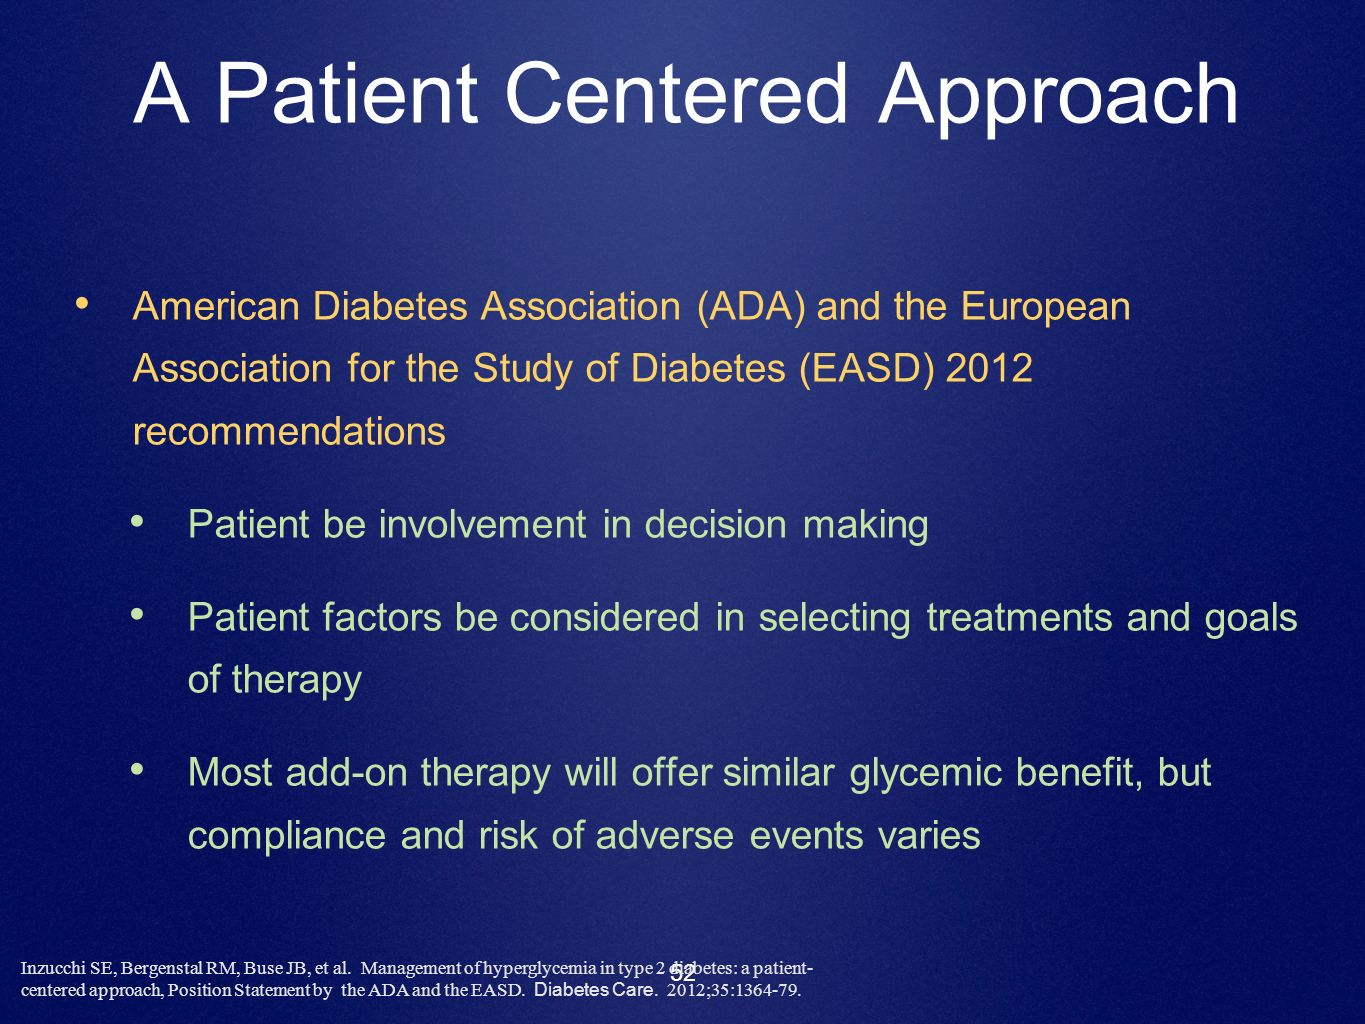 A Patient Centered Approach